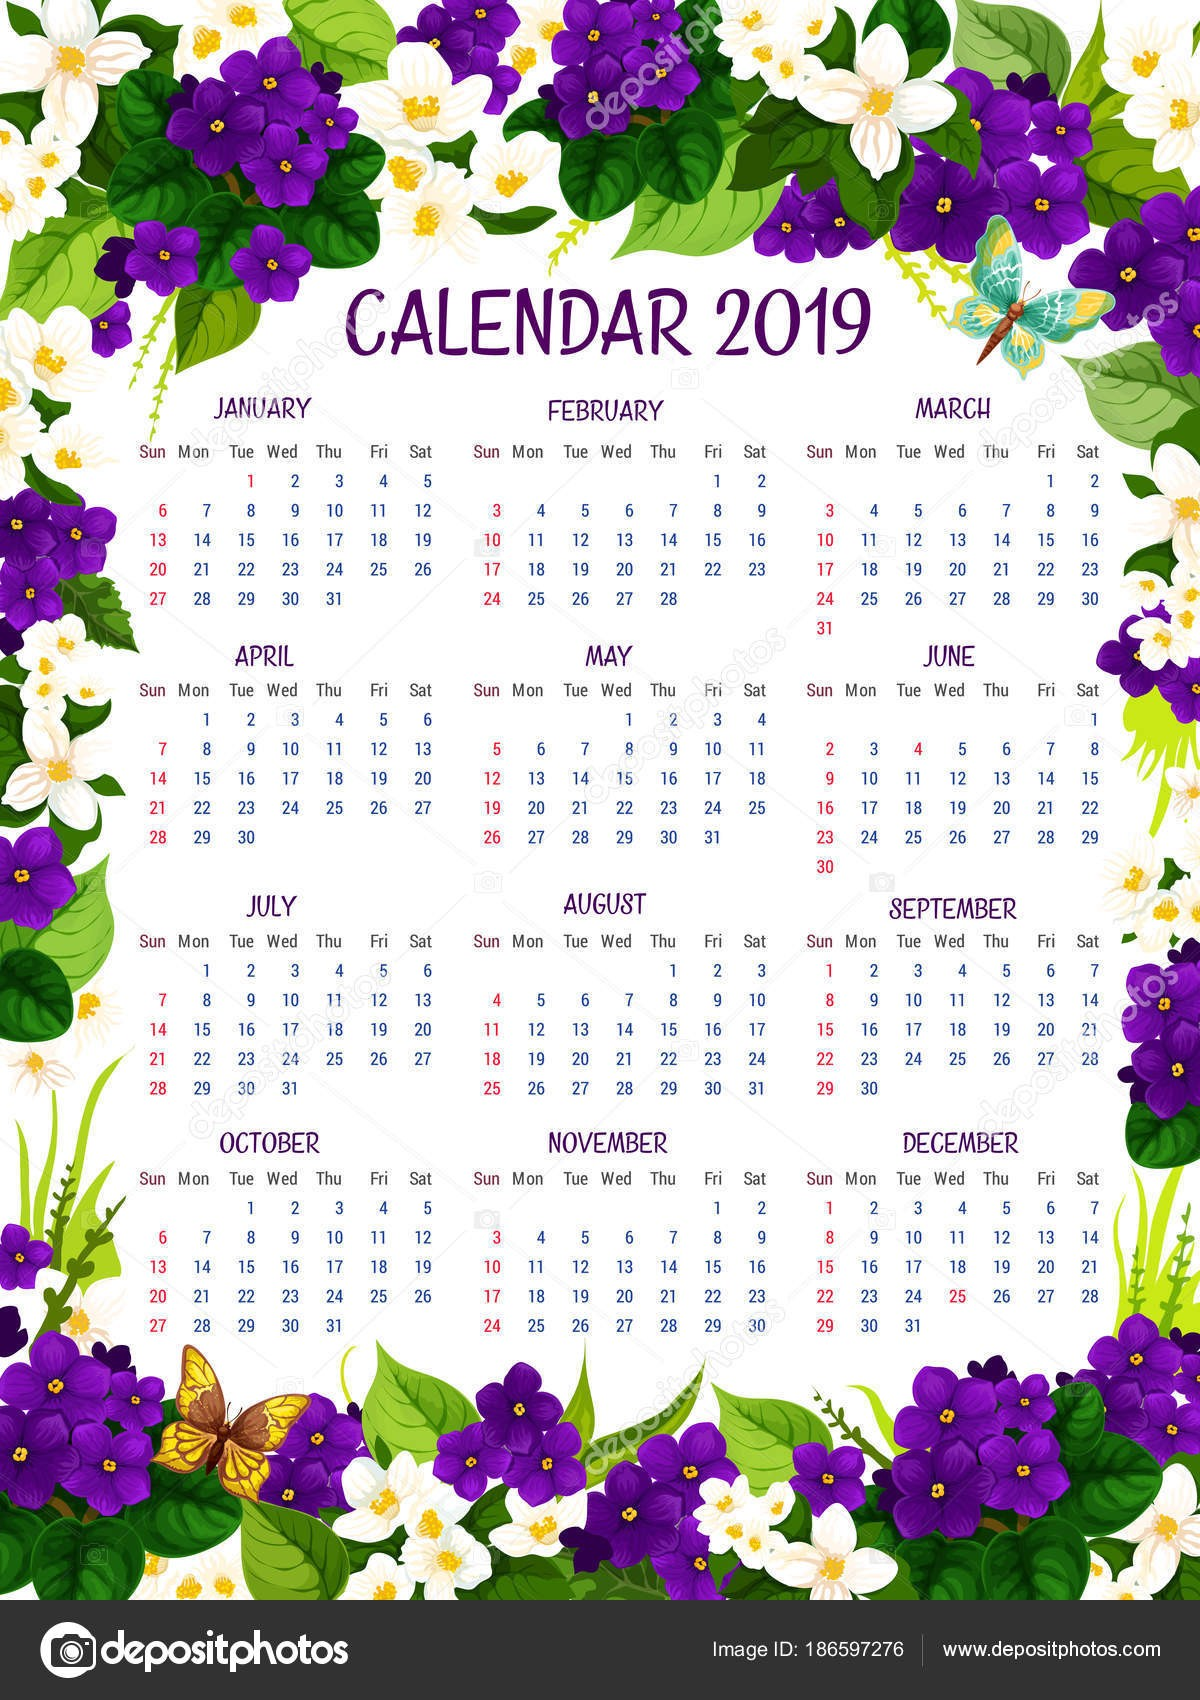 Calendario 2019 Portugues Más Recientemente Liberado Vectores Dise±o De Calendarios Of Calendario 2019 Portugues Más Recientemente Liberado Plantilla Para Calendario 2019 La Pared — Vector De Stock